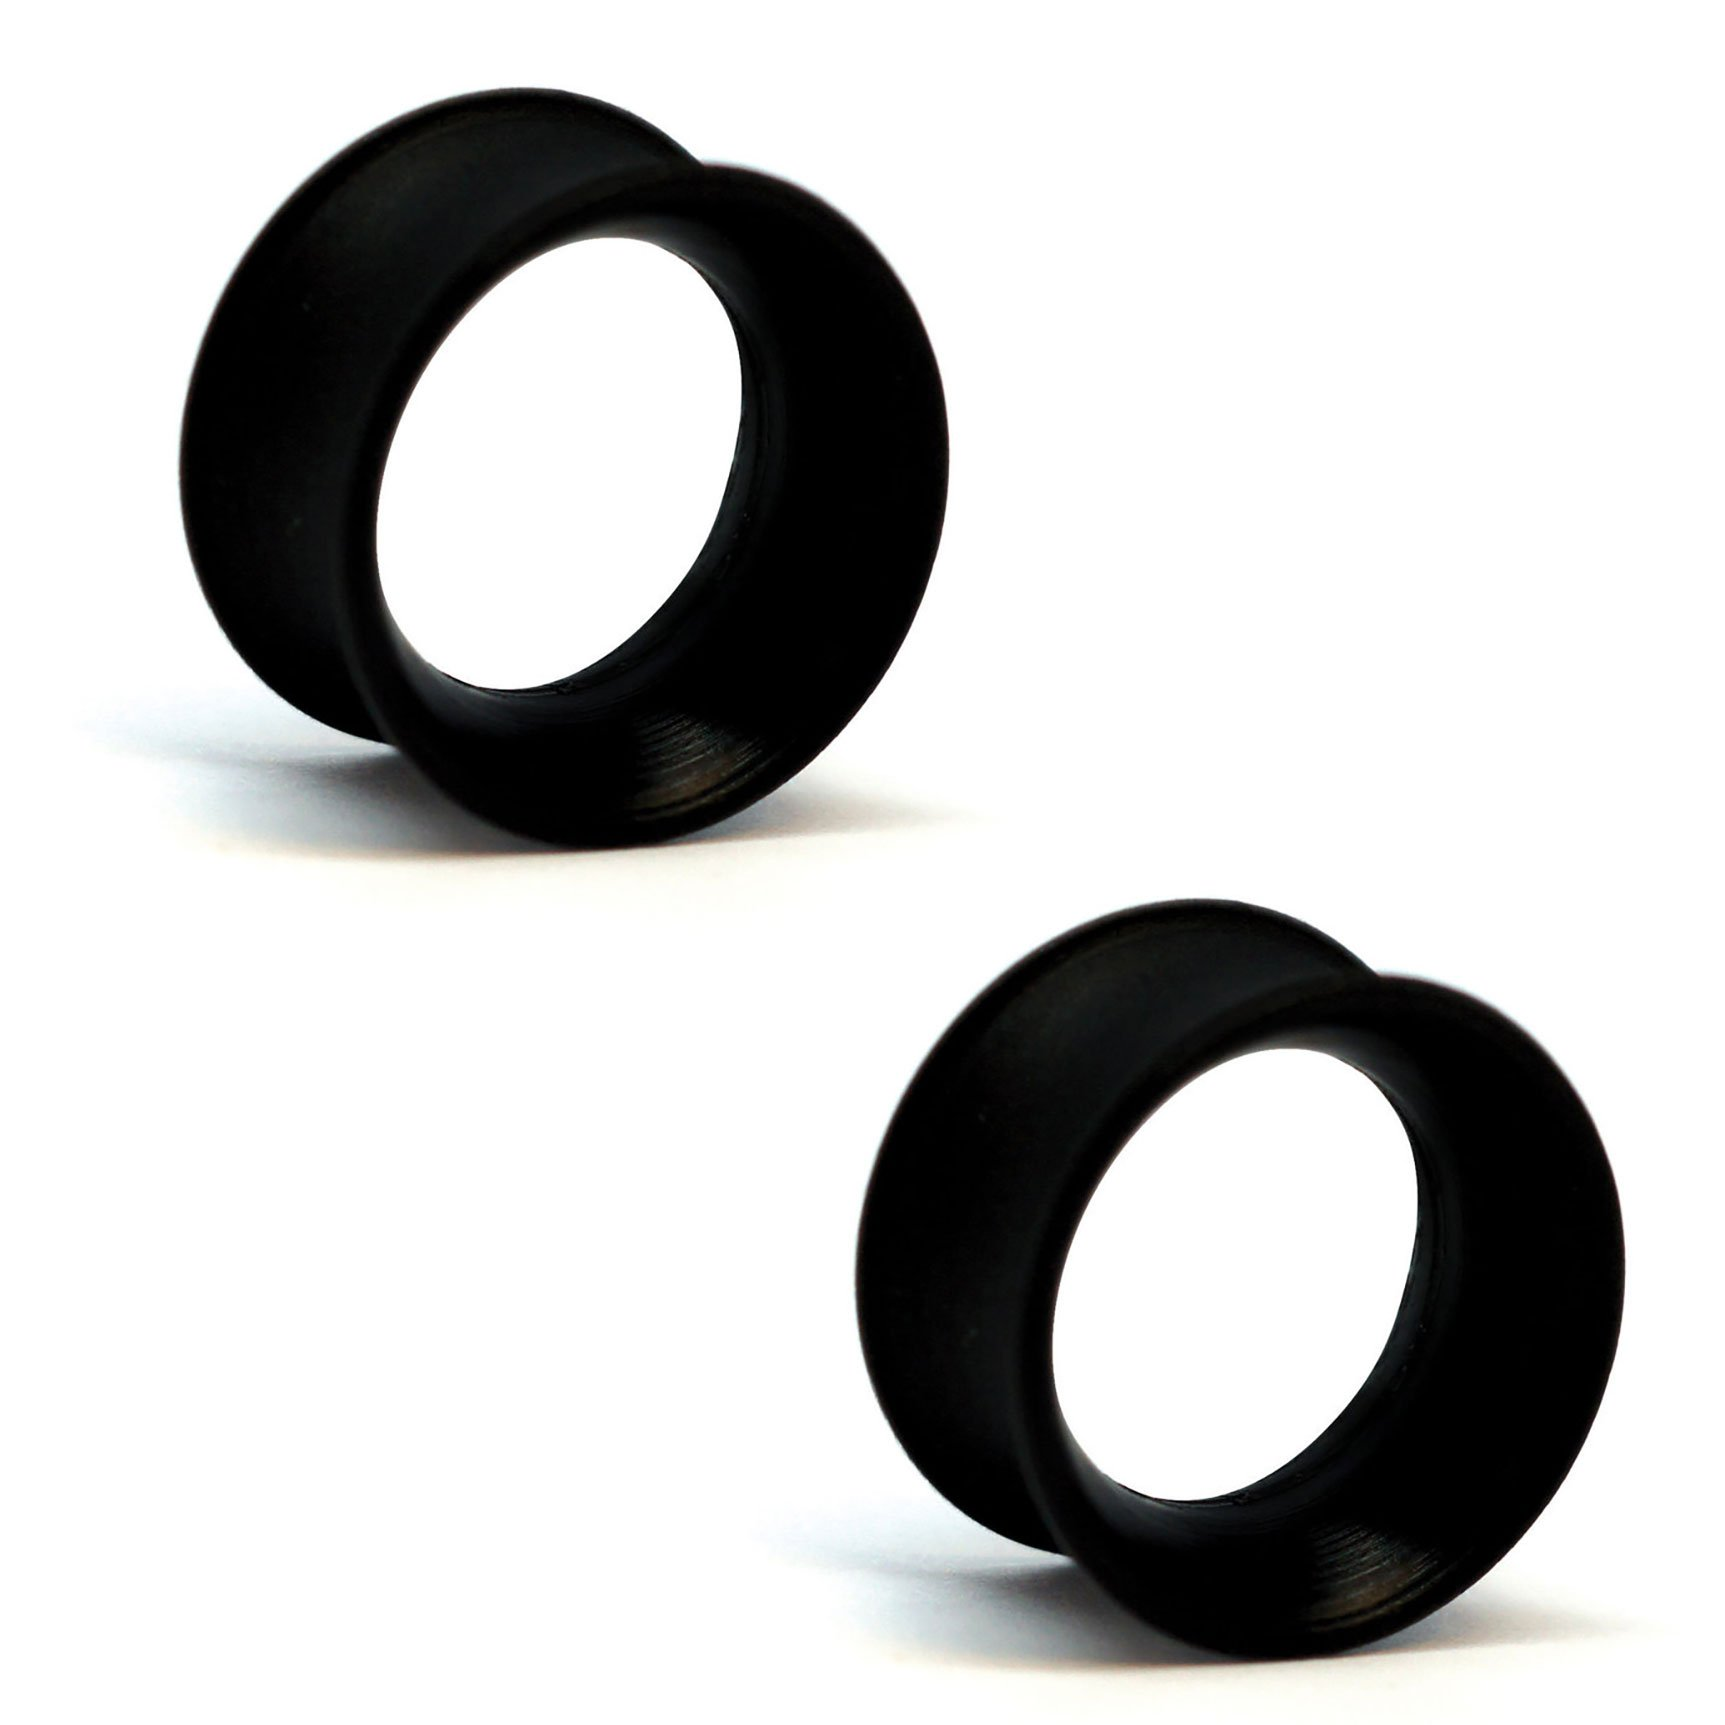 Pair of Silicone Double Flared Skin Eyelets: 5/8'', wearable length: 5/16'', Black